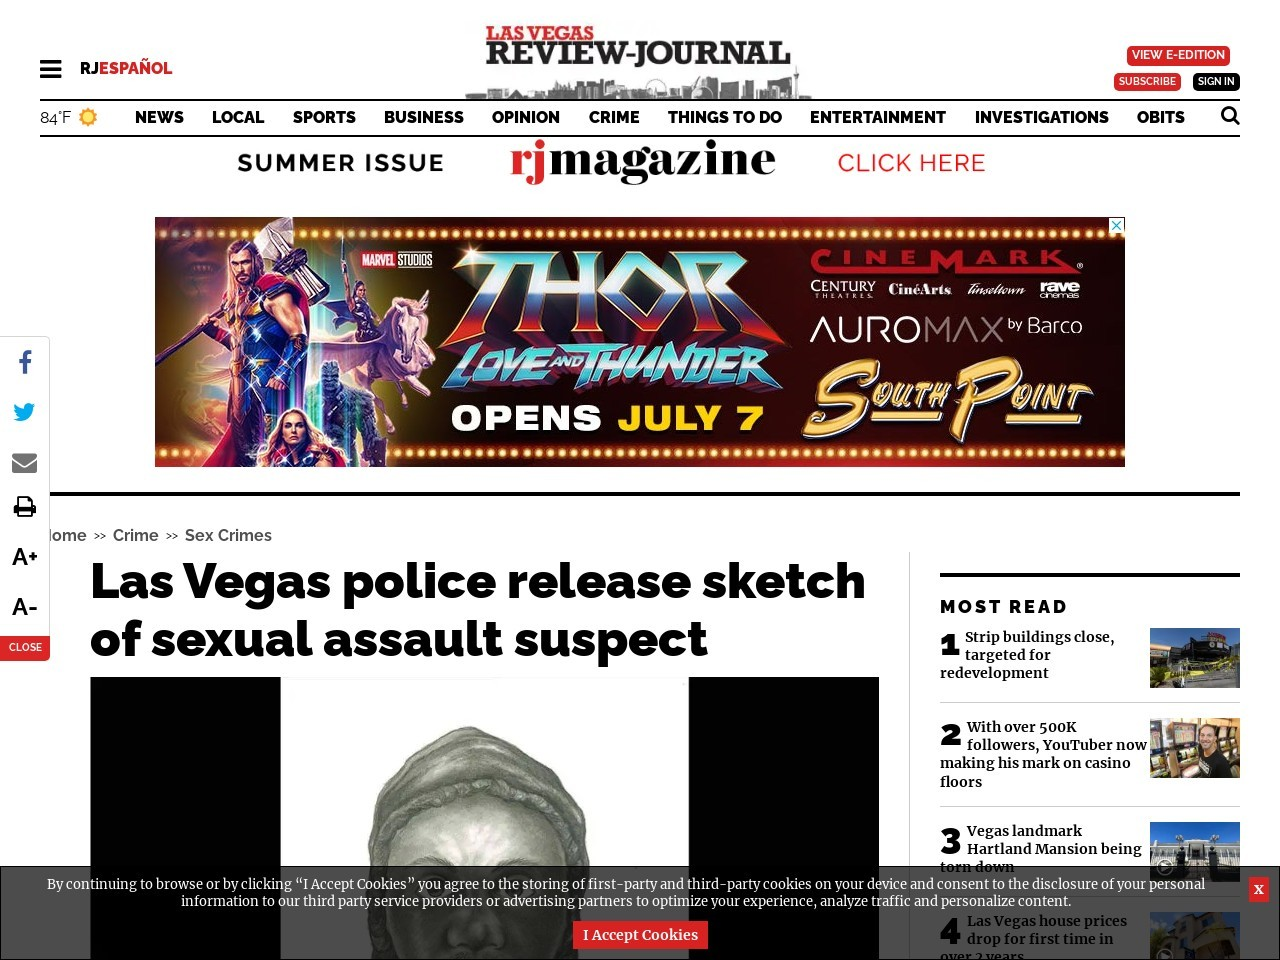 Las Vegas police release sketch of sexual assault suspect